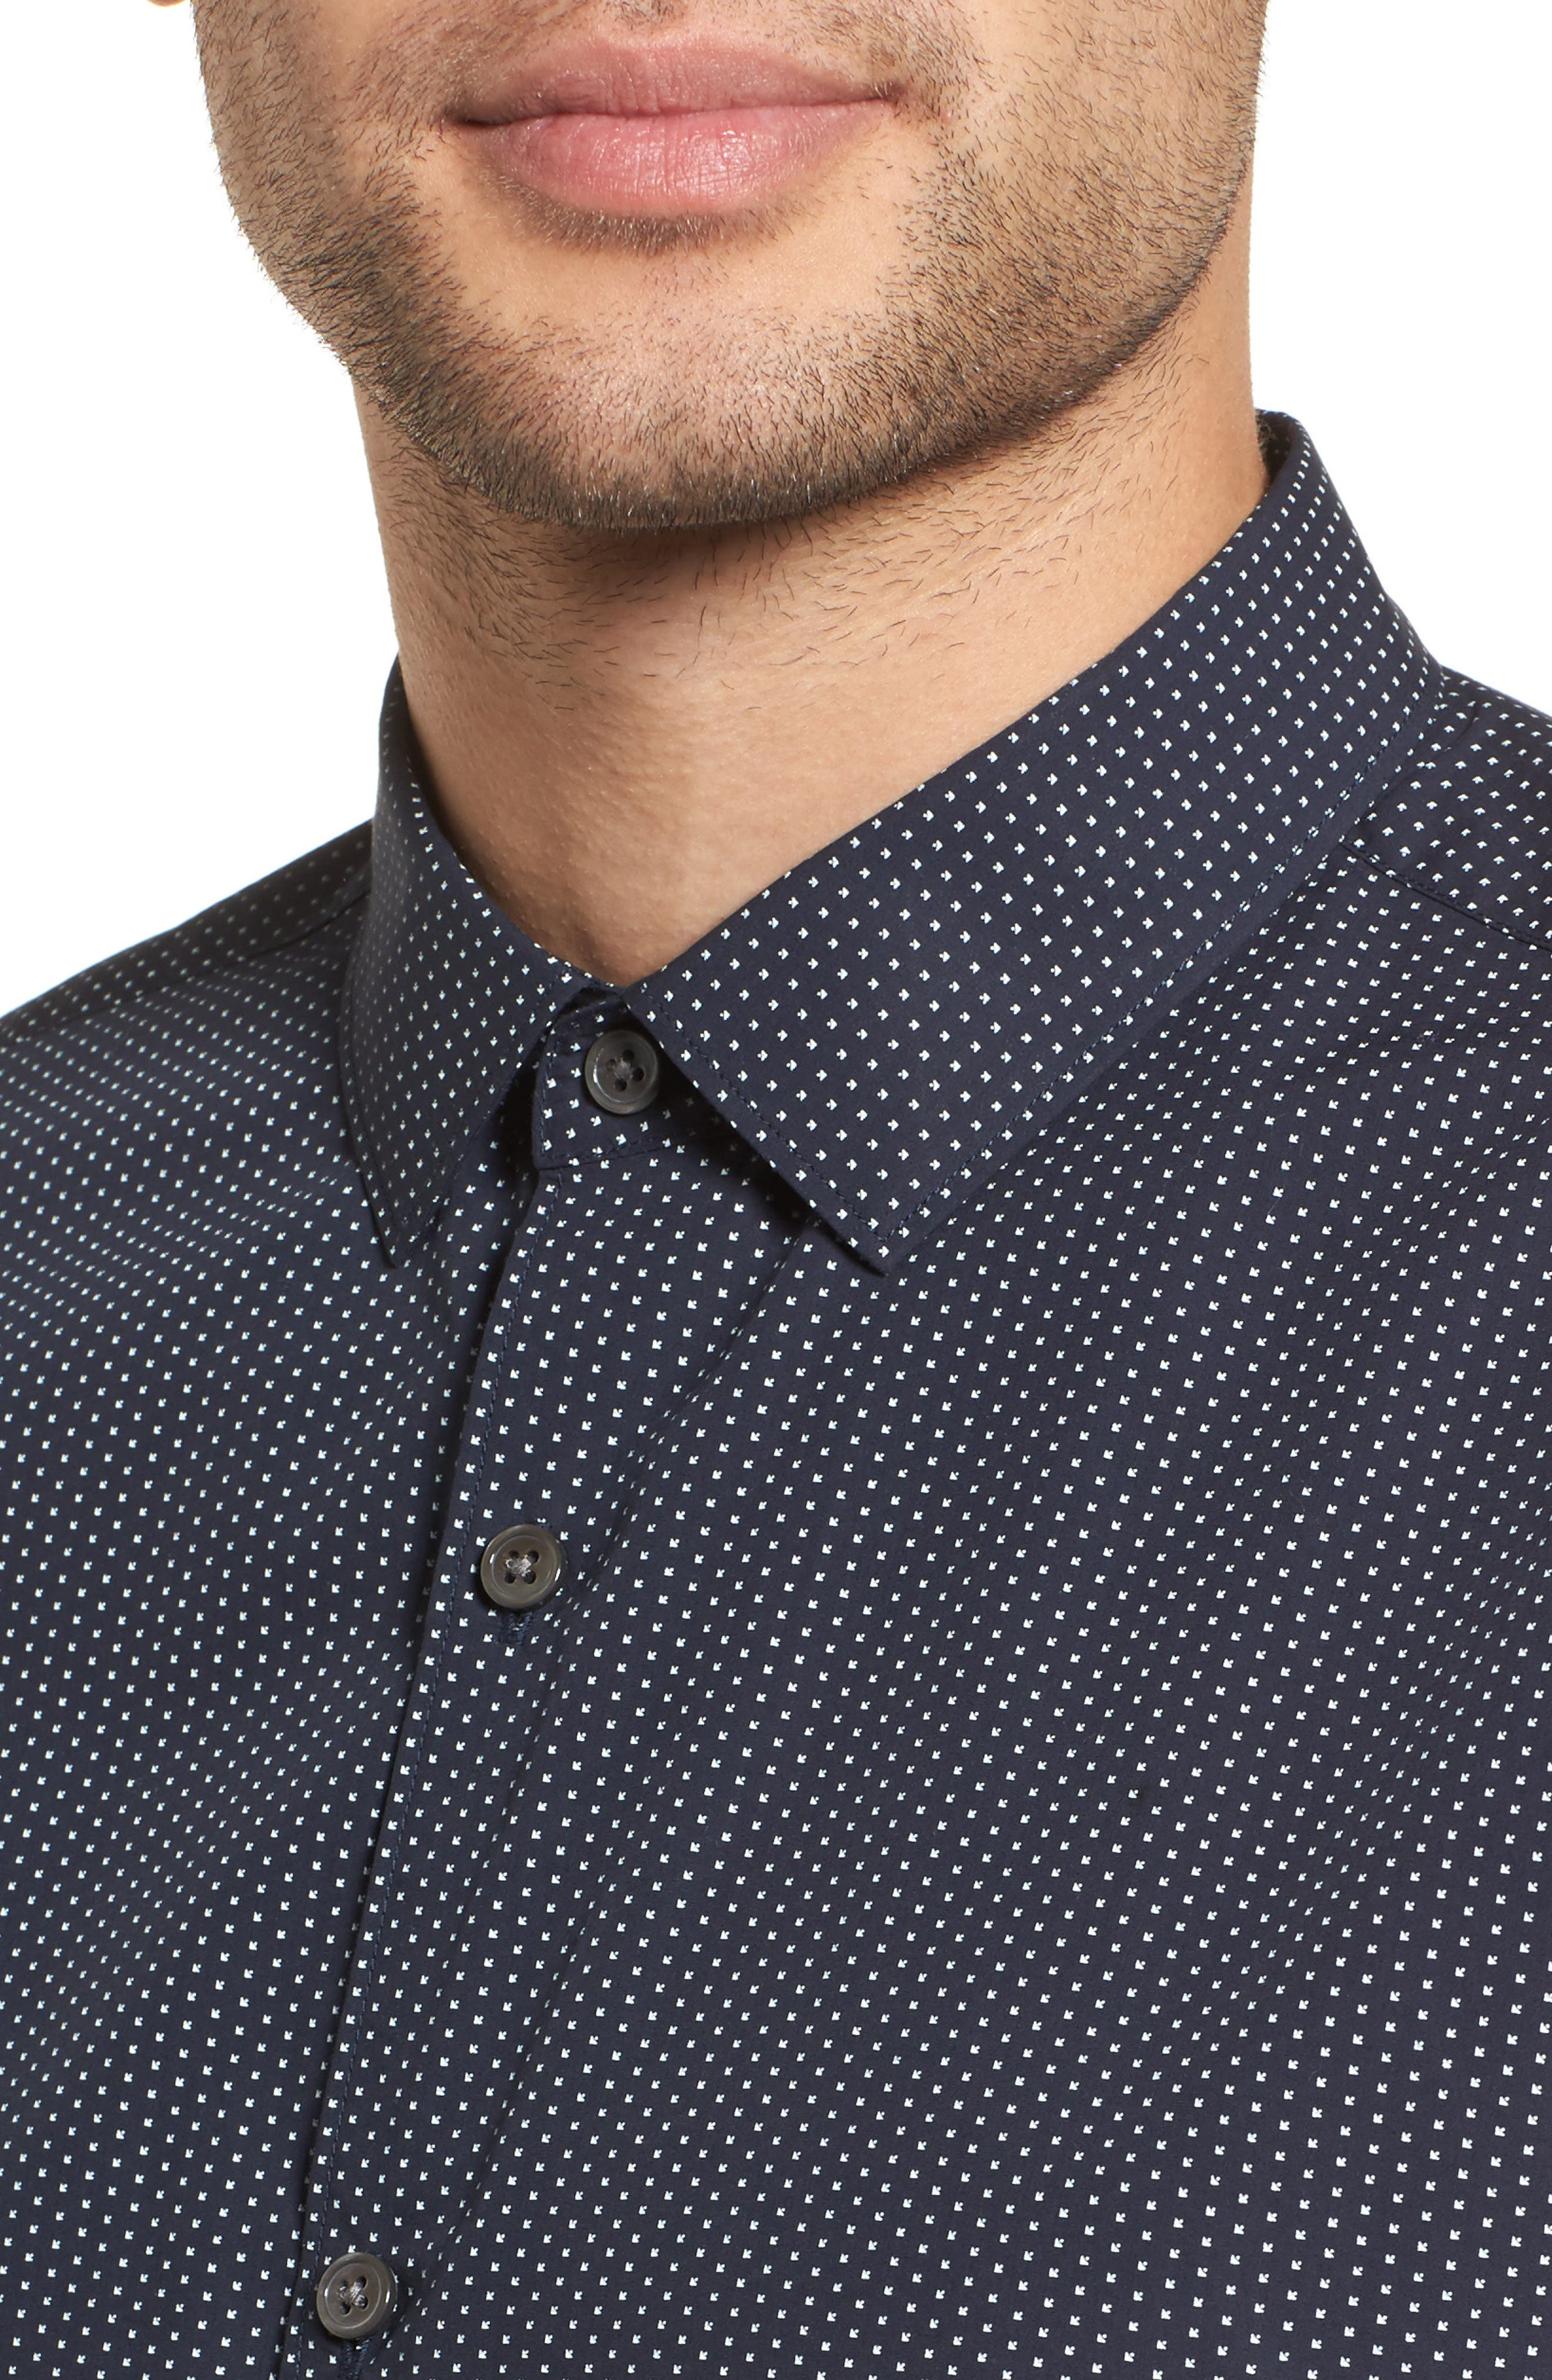 Murray Slim Fit Sport Shirt,                             Alternate thumbnail 4, color,                             Eclipse